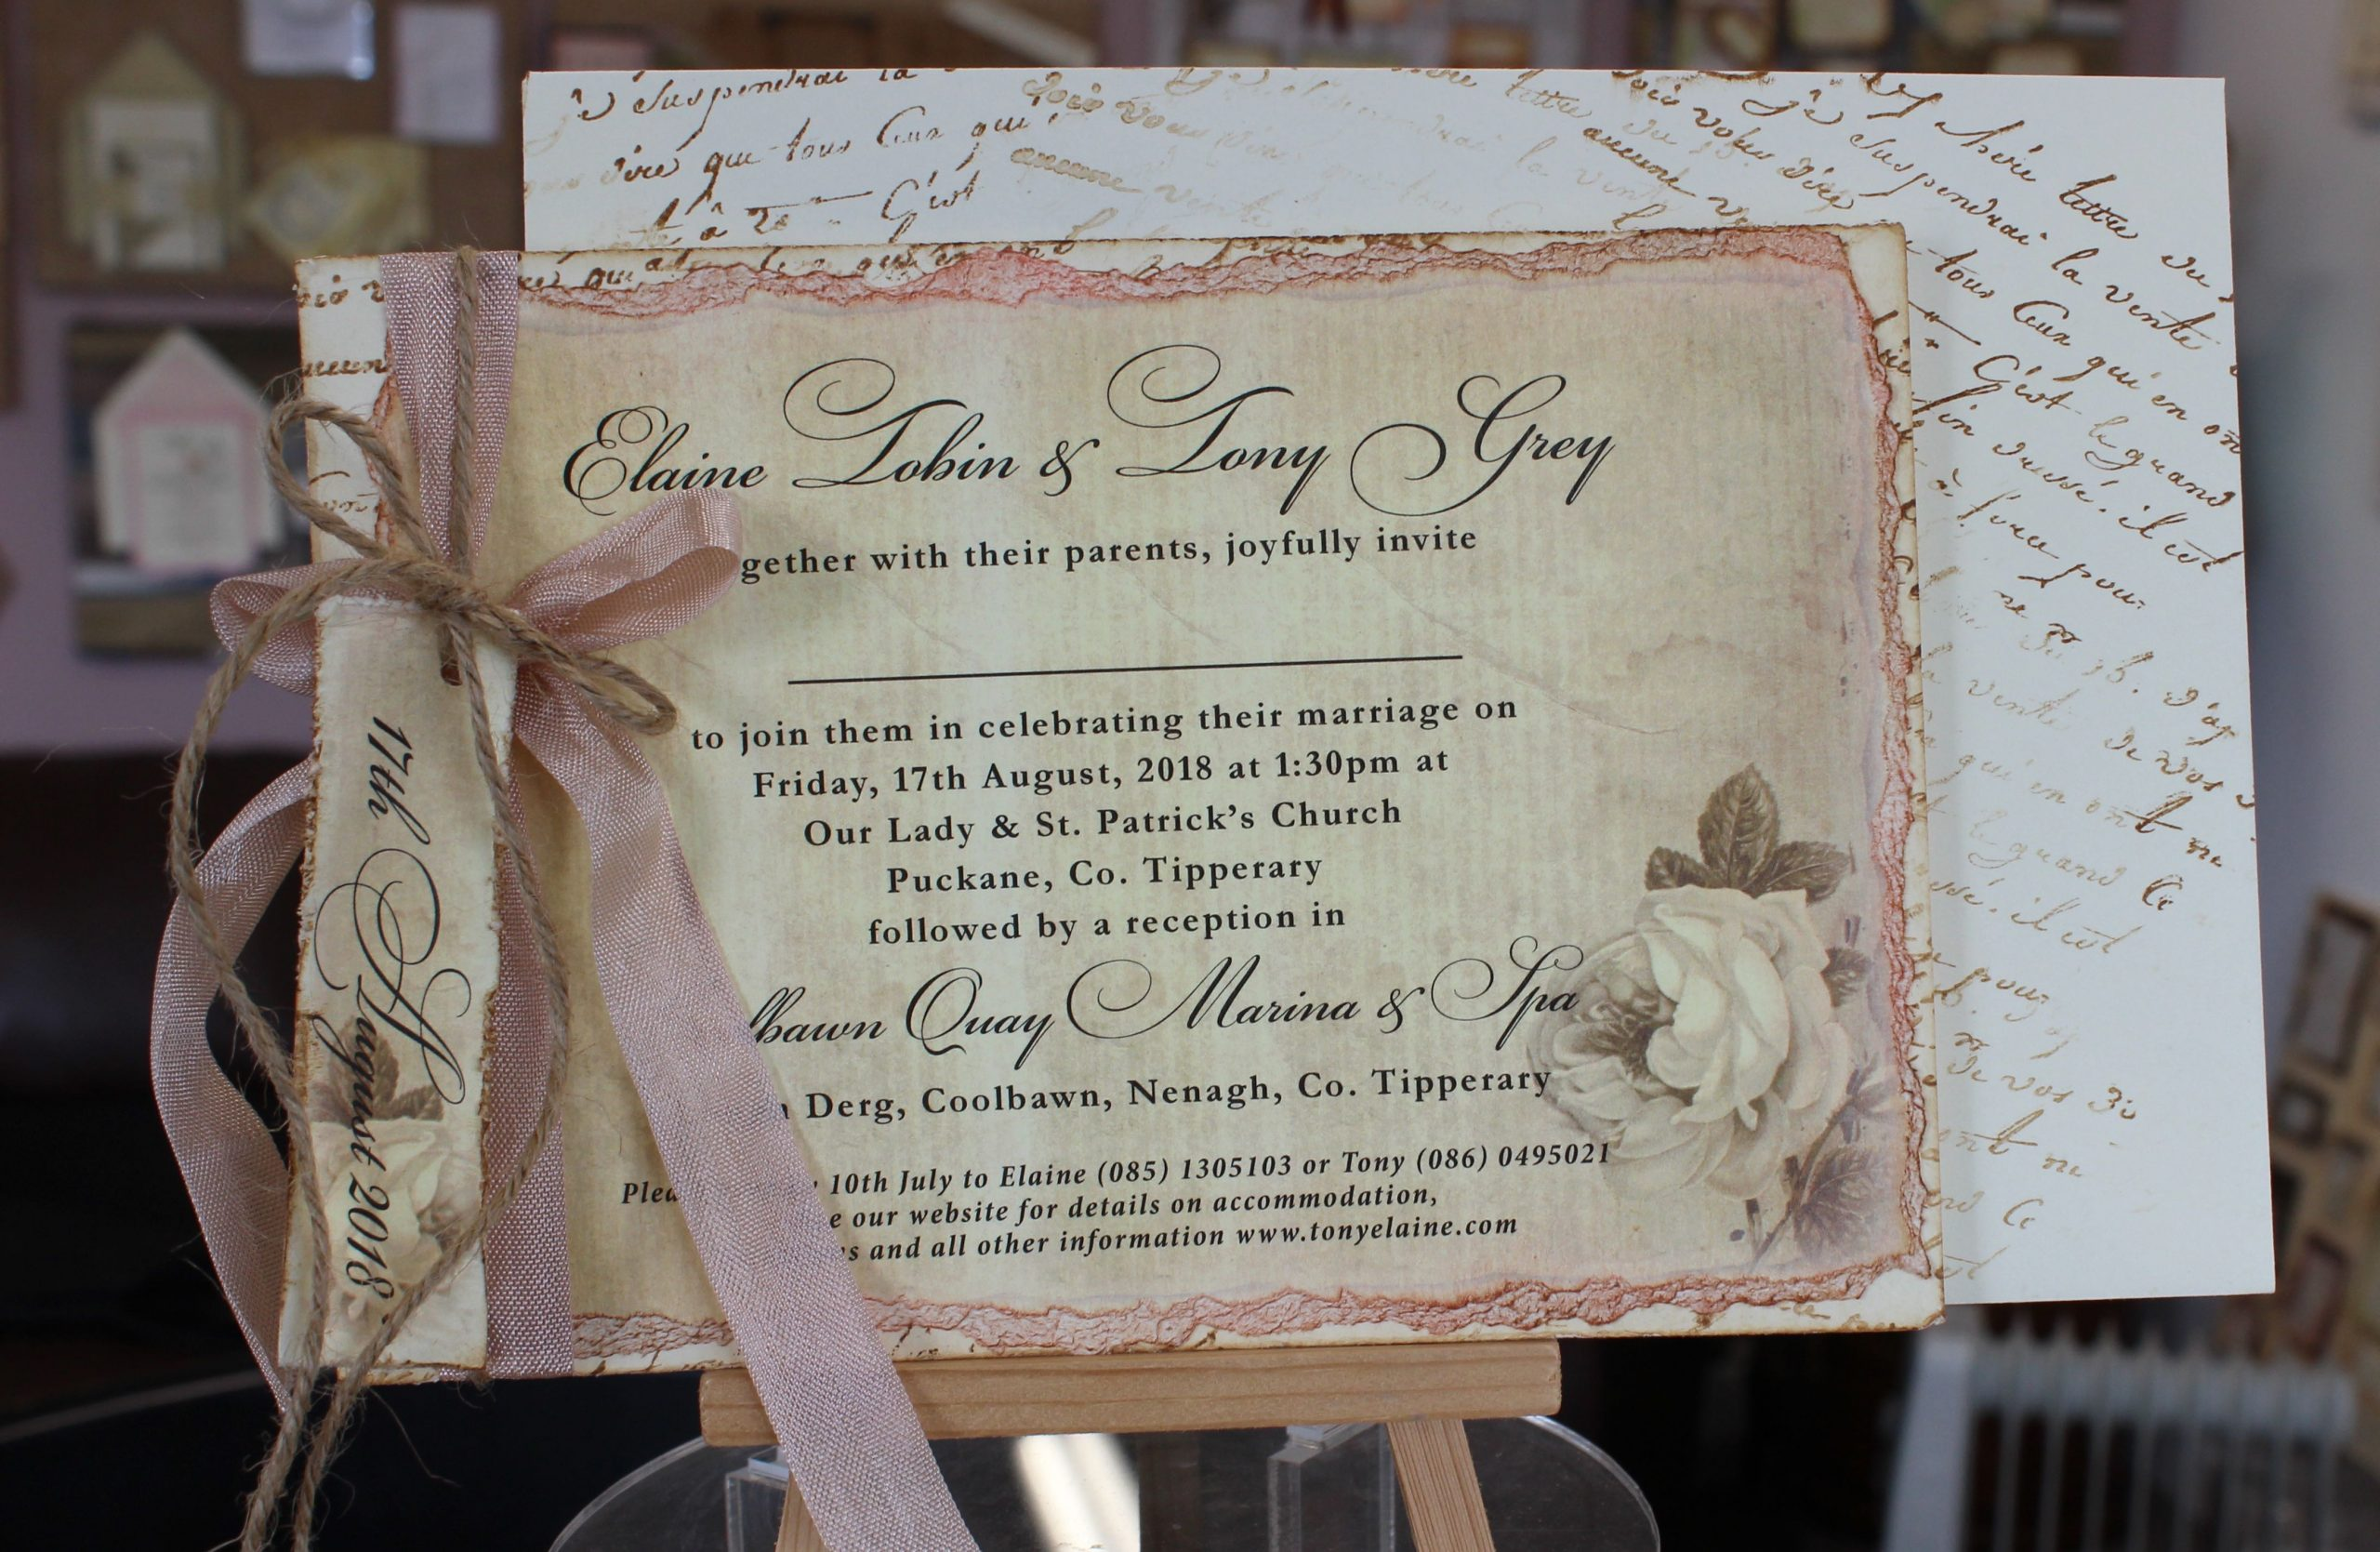 Vintage Invitation - Elaine